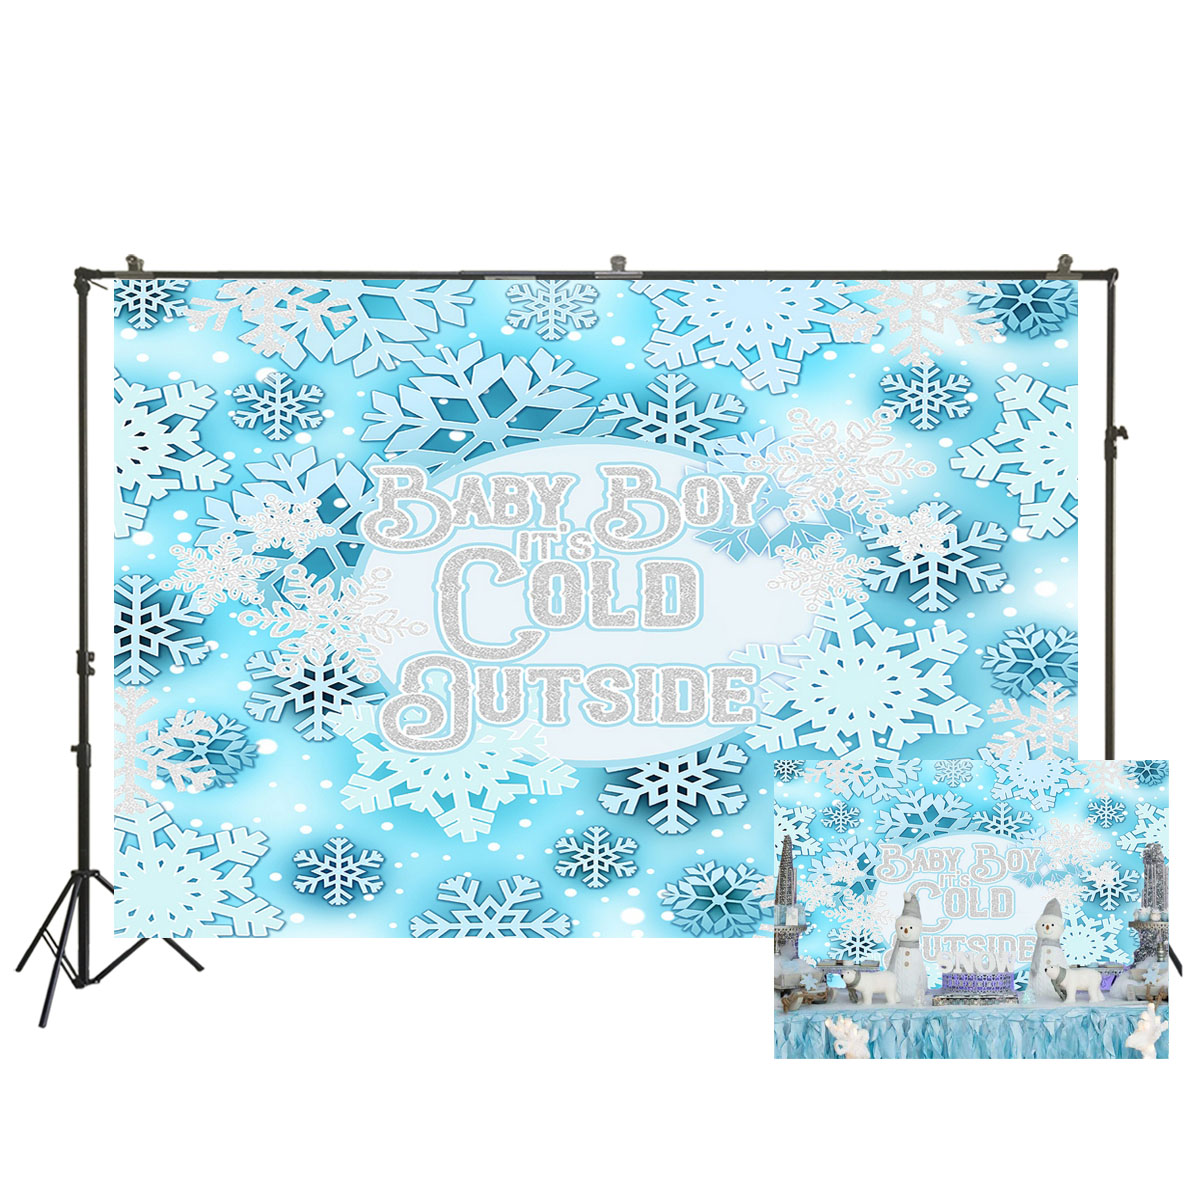 Baby Boy It S Cold Outside Backdrop Winter Snowflake Baby Shower Background 1st Birthday Party Decorations Baby Shower W 3625 Background Aliexpress